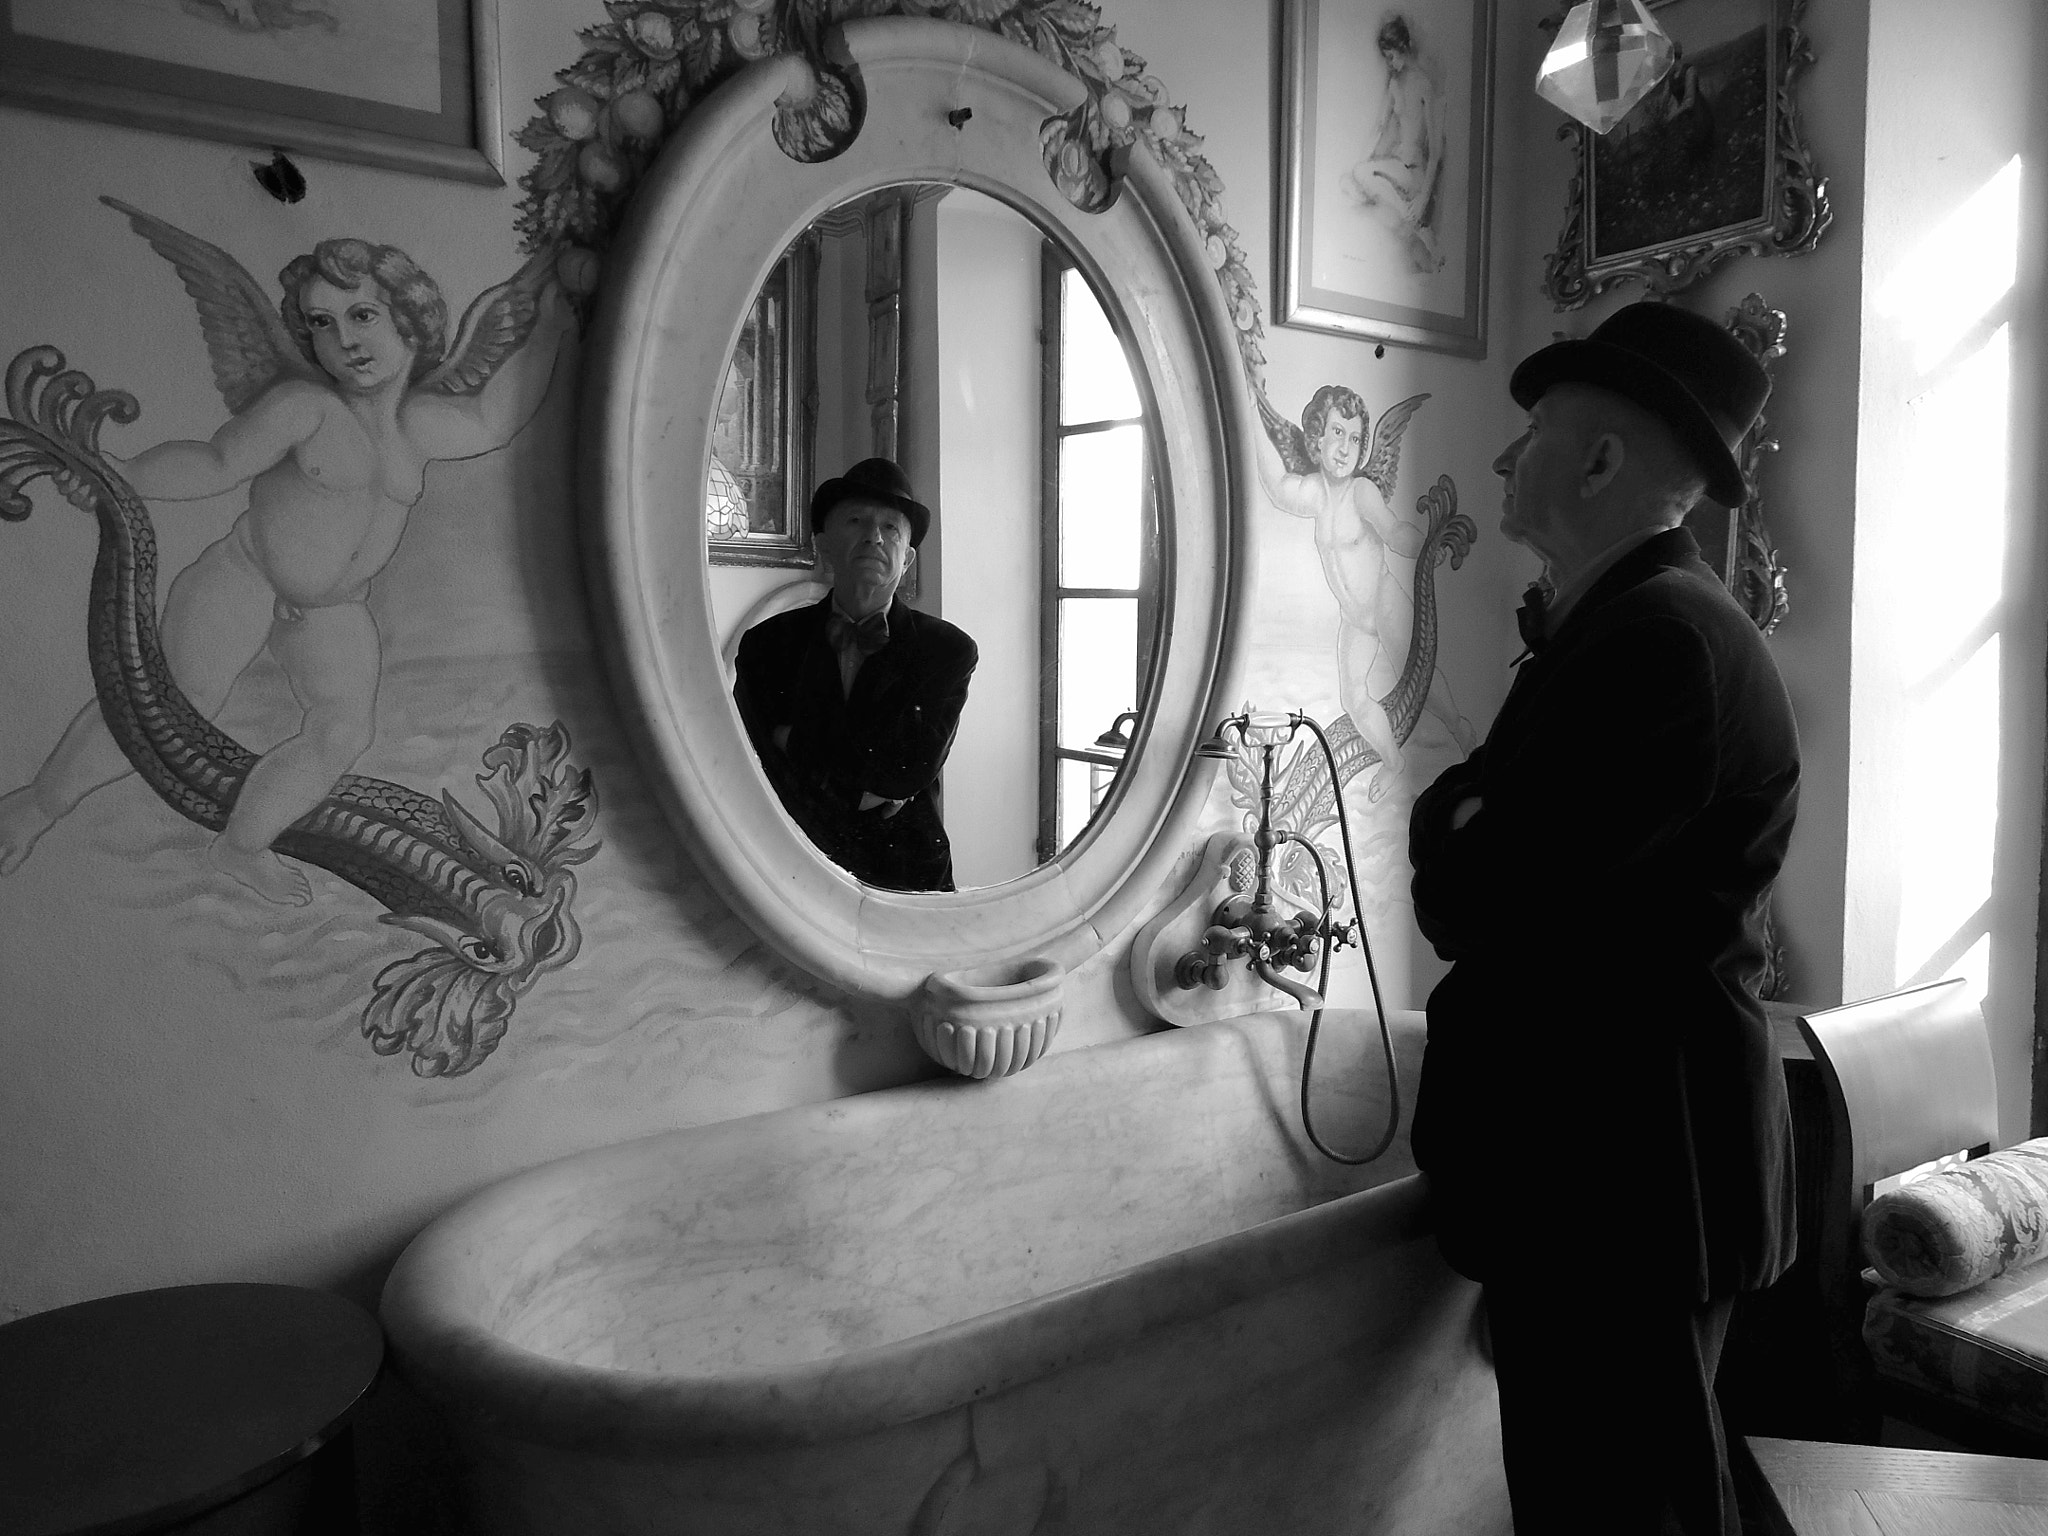 Photograph Mr. Conte Moretti .......in your  bathroom by cesare schiraldi on 500px